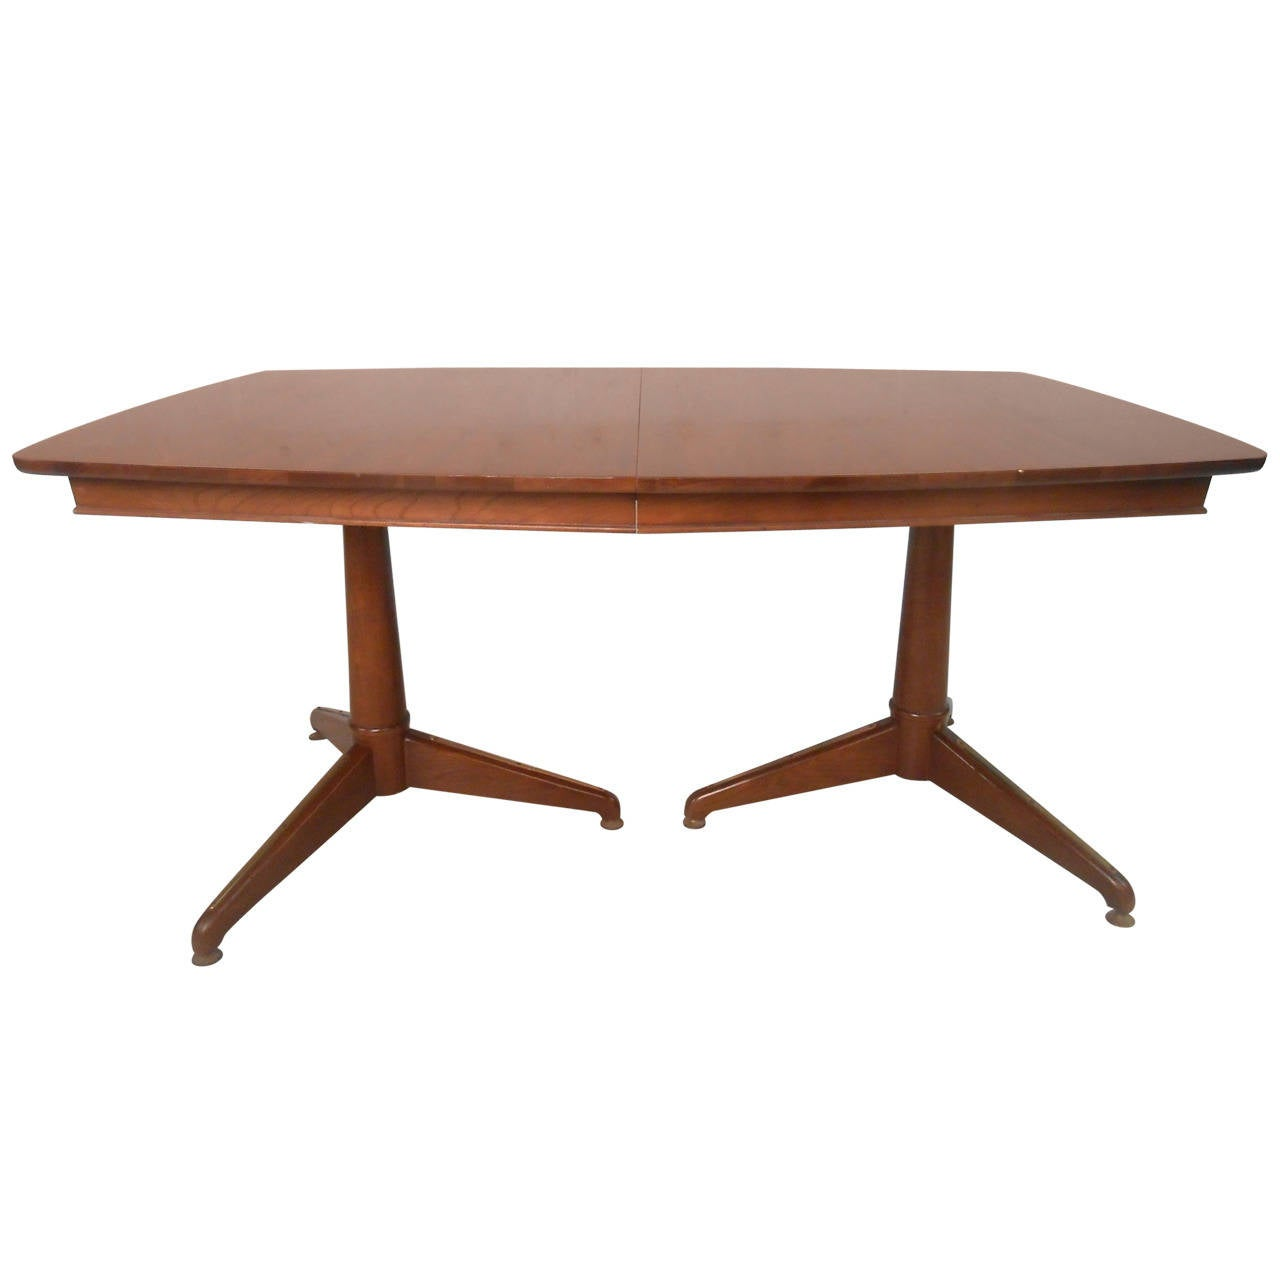 mid century modern kent coffey perspecta dining table at. Black Bedroom Furniture Sets. Home Design Ideas